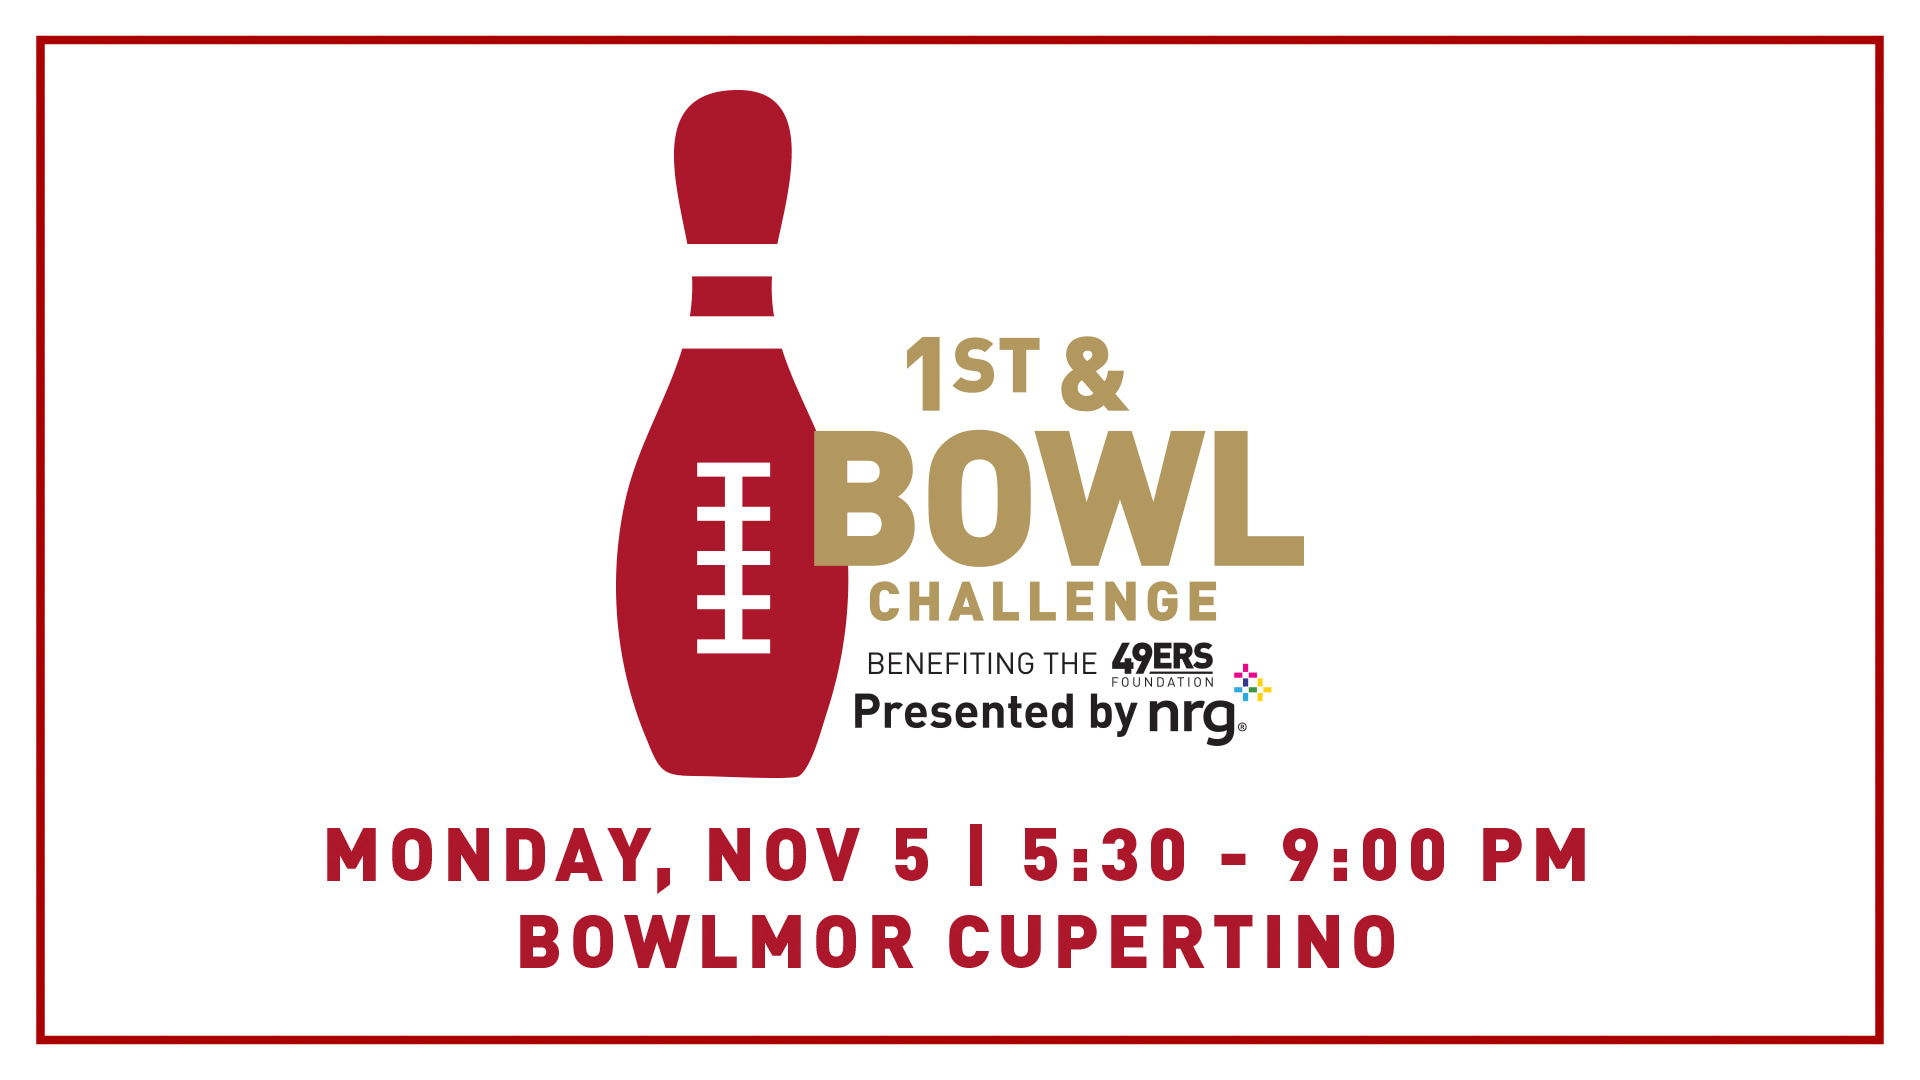 Claim your lane today at the first-ever 49ers 1st and Bowl Challenge benefiting the 49ers Foundation presented by NRG!